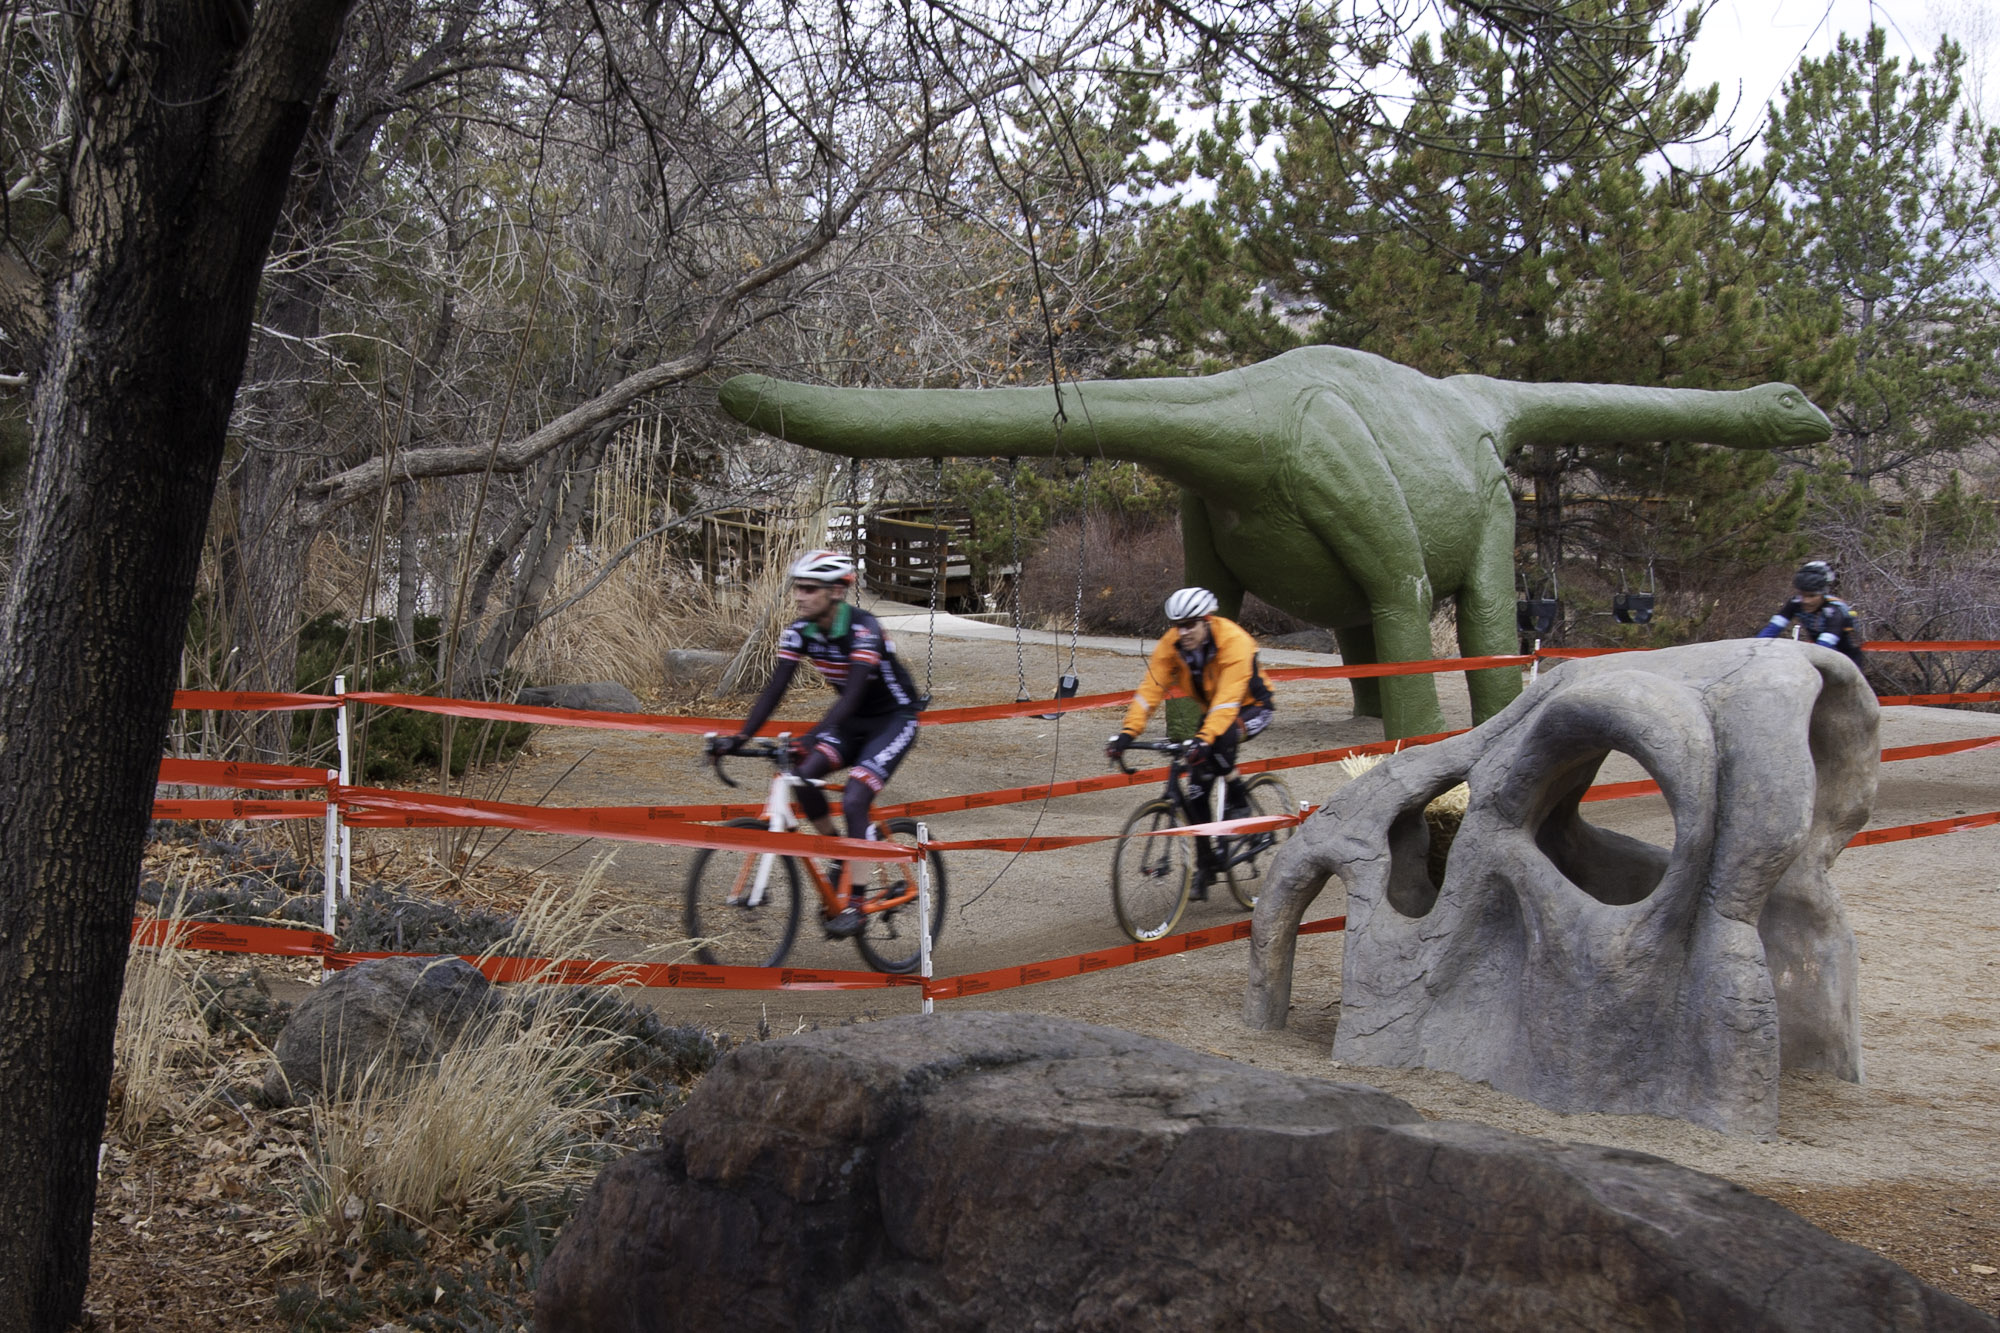 Cyclocross racers ride through a dinasaur themed playground